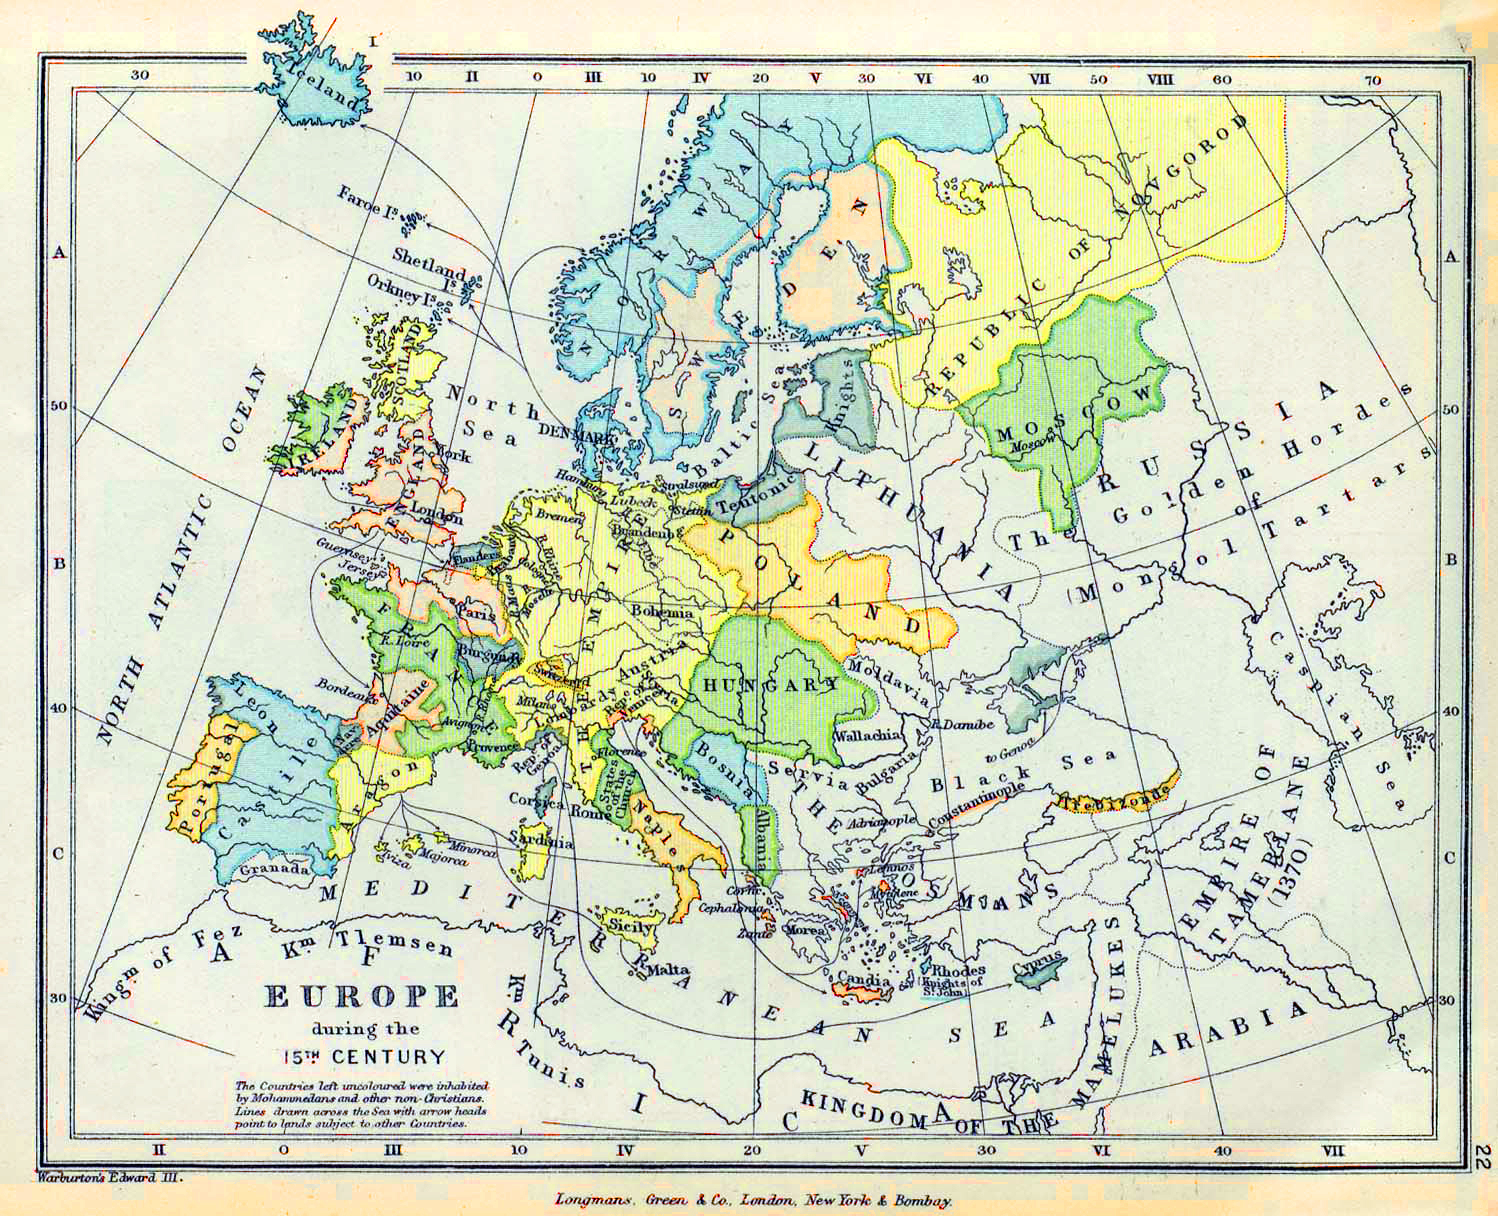 Map of Europe during the 15th Century